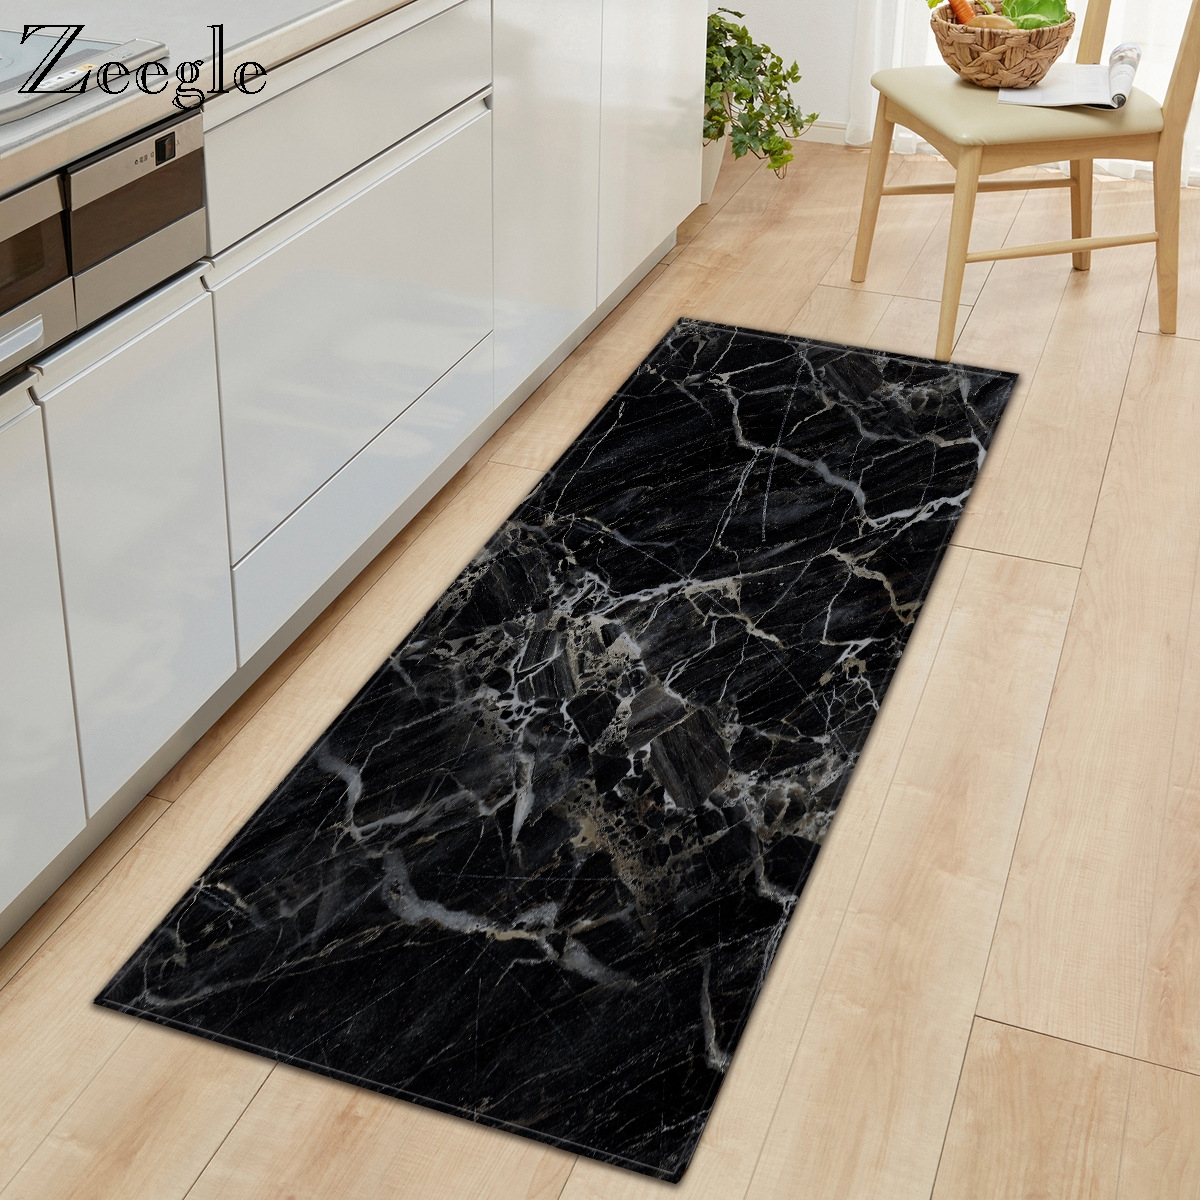 Zeegle Carpet Marble Pattern Kitchen Rug Anti-slip Bathroom Doormat Hallway Floor Rug Absorbent Bedside Carpet Mat Soft Foot Rug